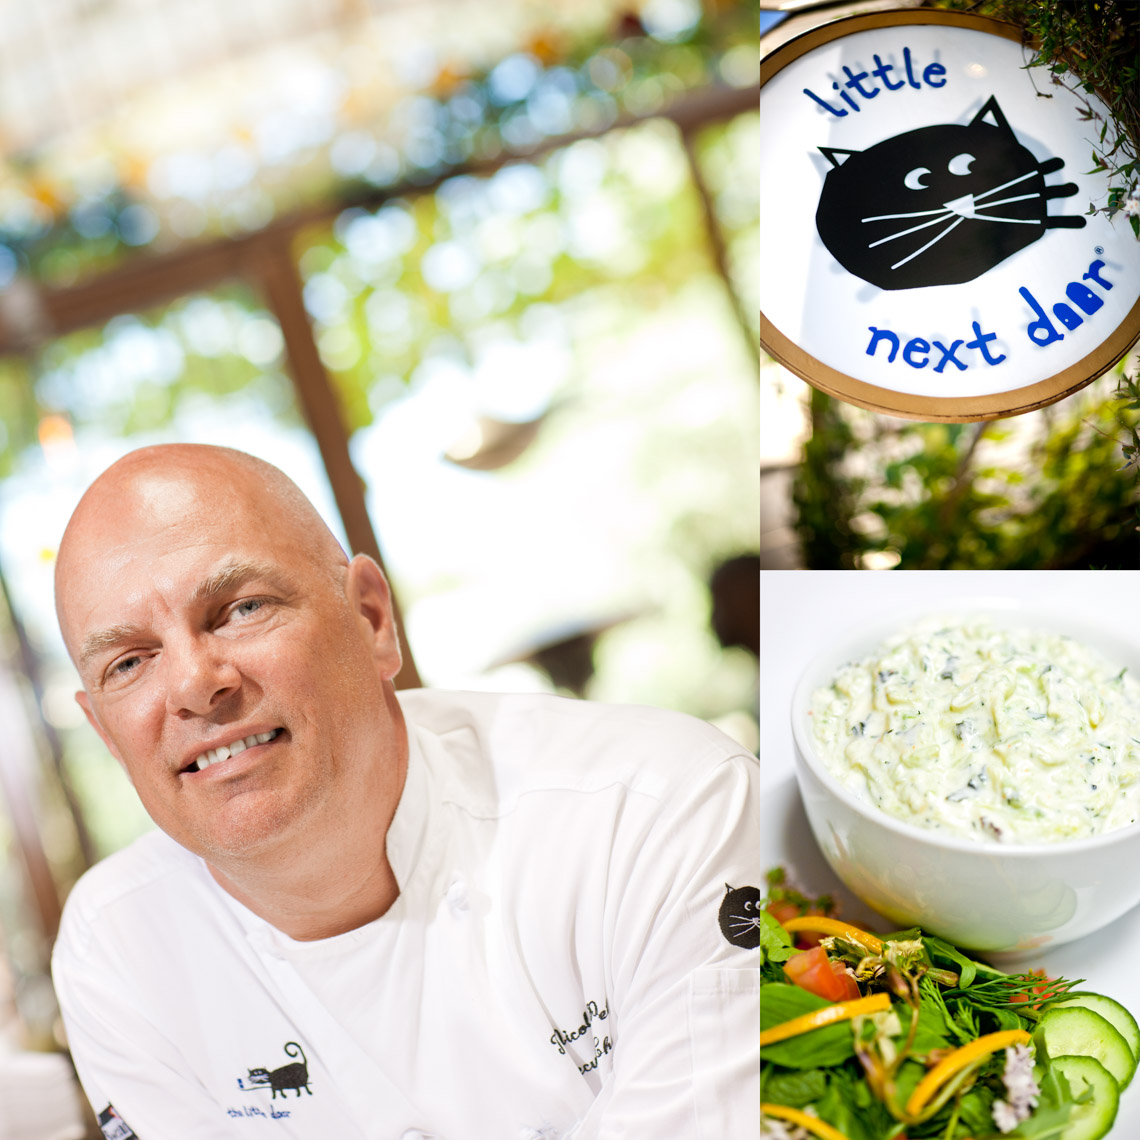 Los Angeles Photographer | Dana Hursey Photography | Top Chef Photography | T. Nicolas Peter - Little Next Door